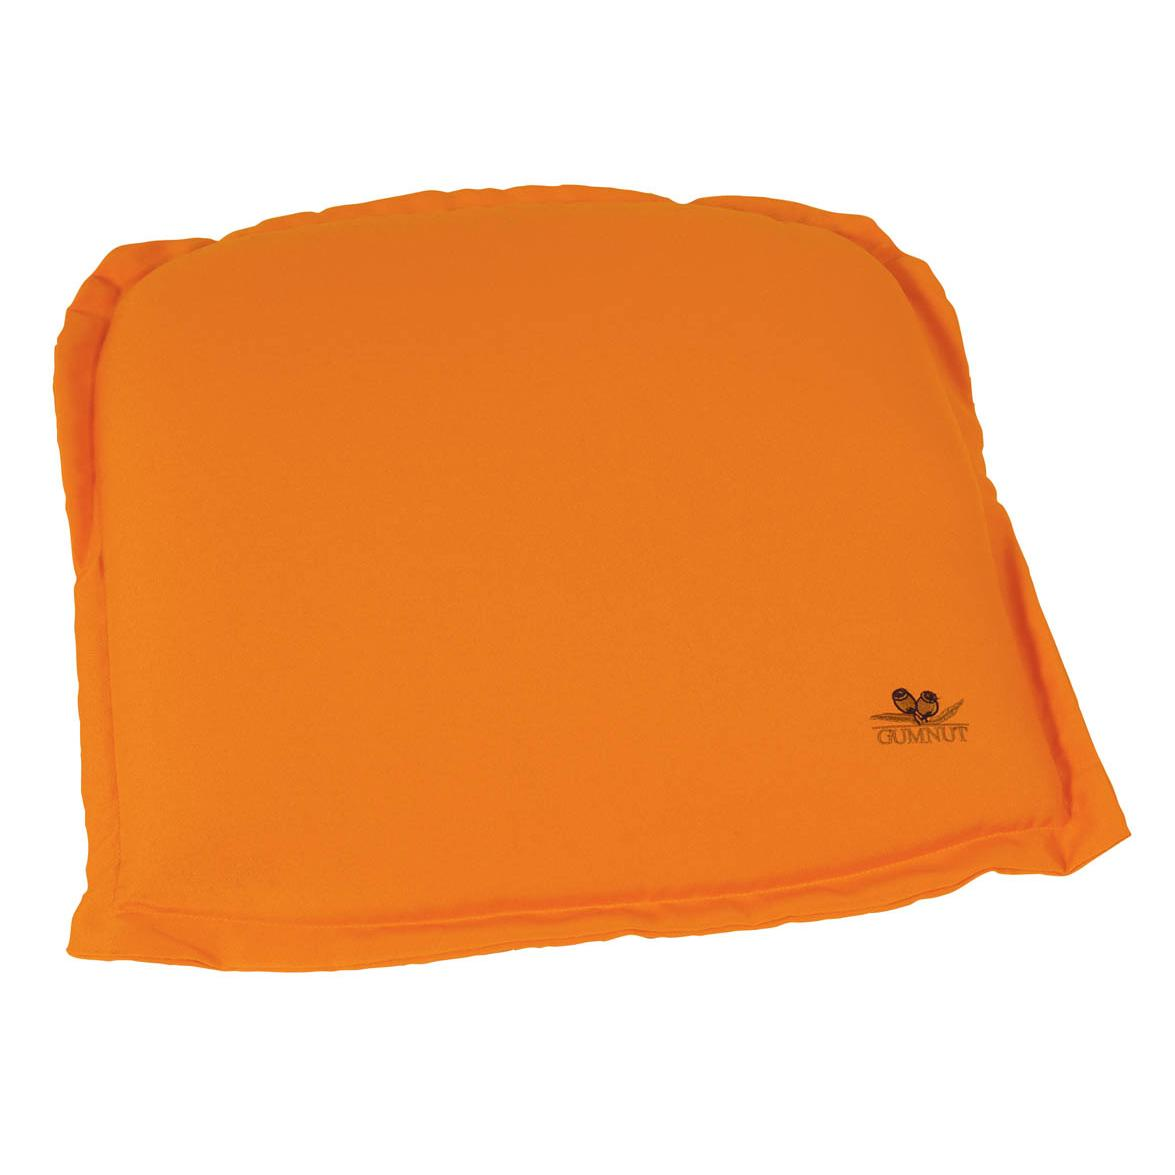 Cushion orange seat 50x50 cm - Orange kitchen chair cushions ...